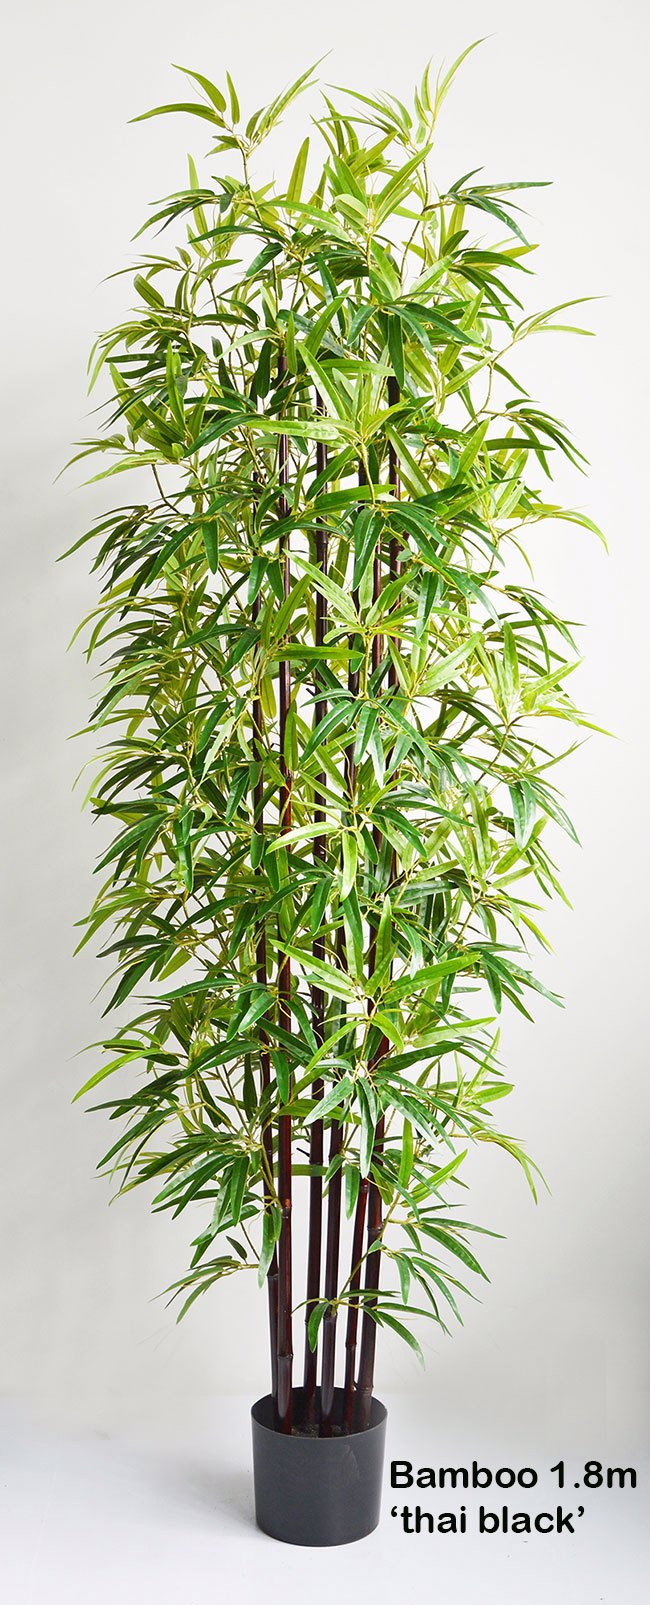 Bamboo 'thai monsoon' 1.8m